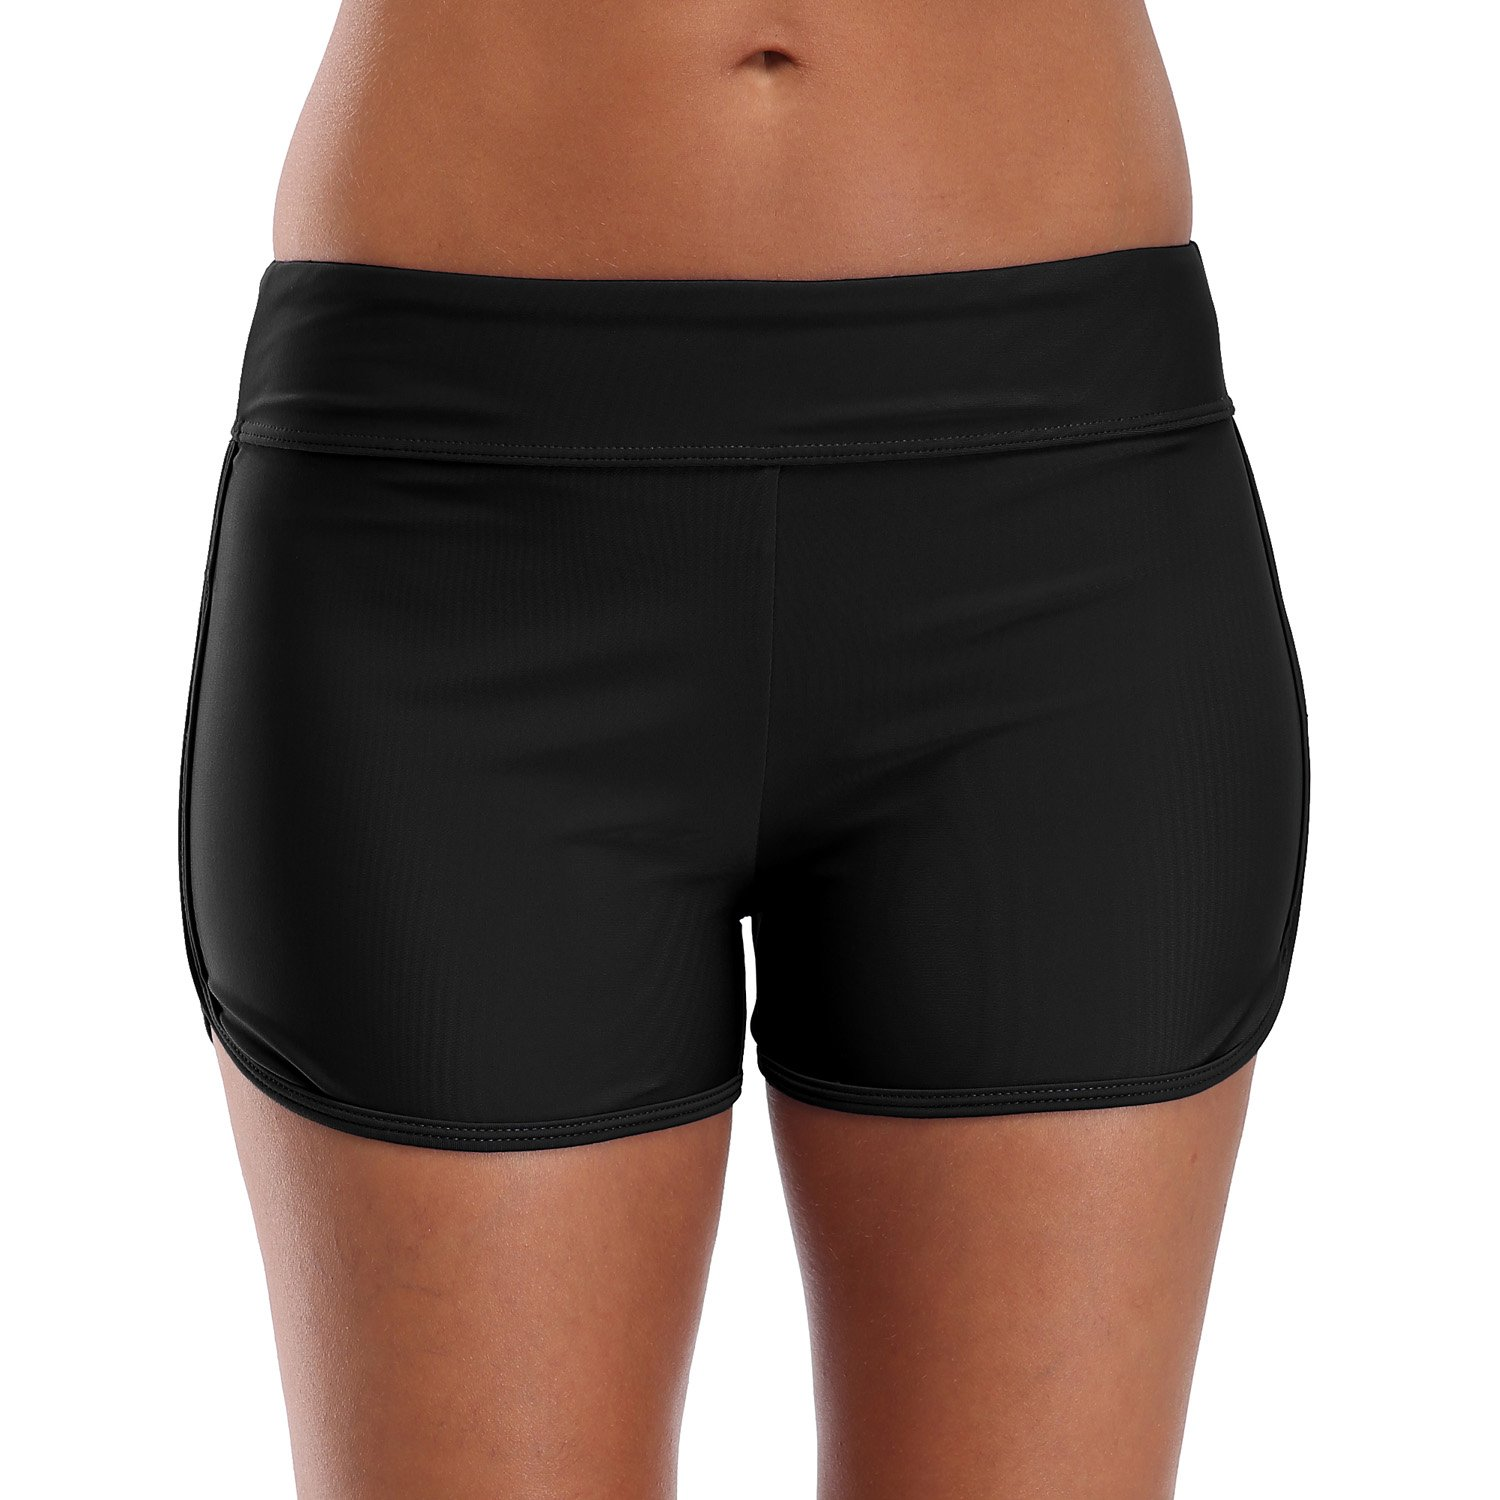 87e278762bb6 Quick dry and light weight activewear comfy board shorts. Boyleg bathing  suit bottoms zero bound to your movement. Wide elastic waistband high waist  tummy ...